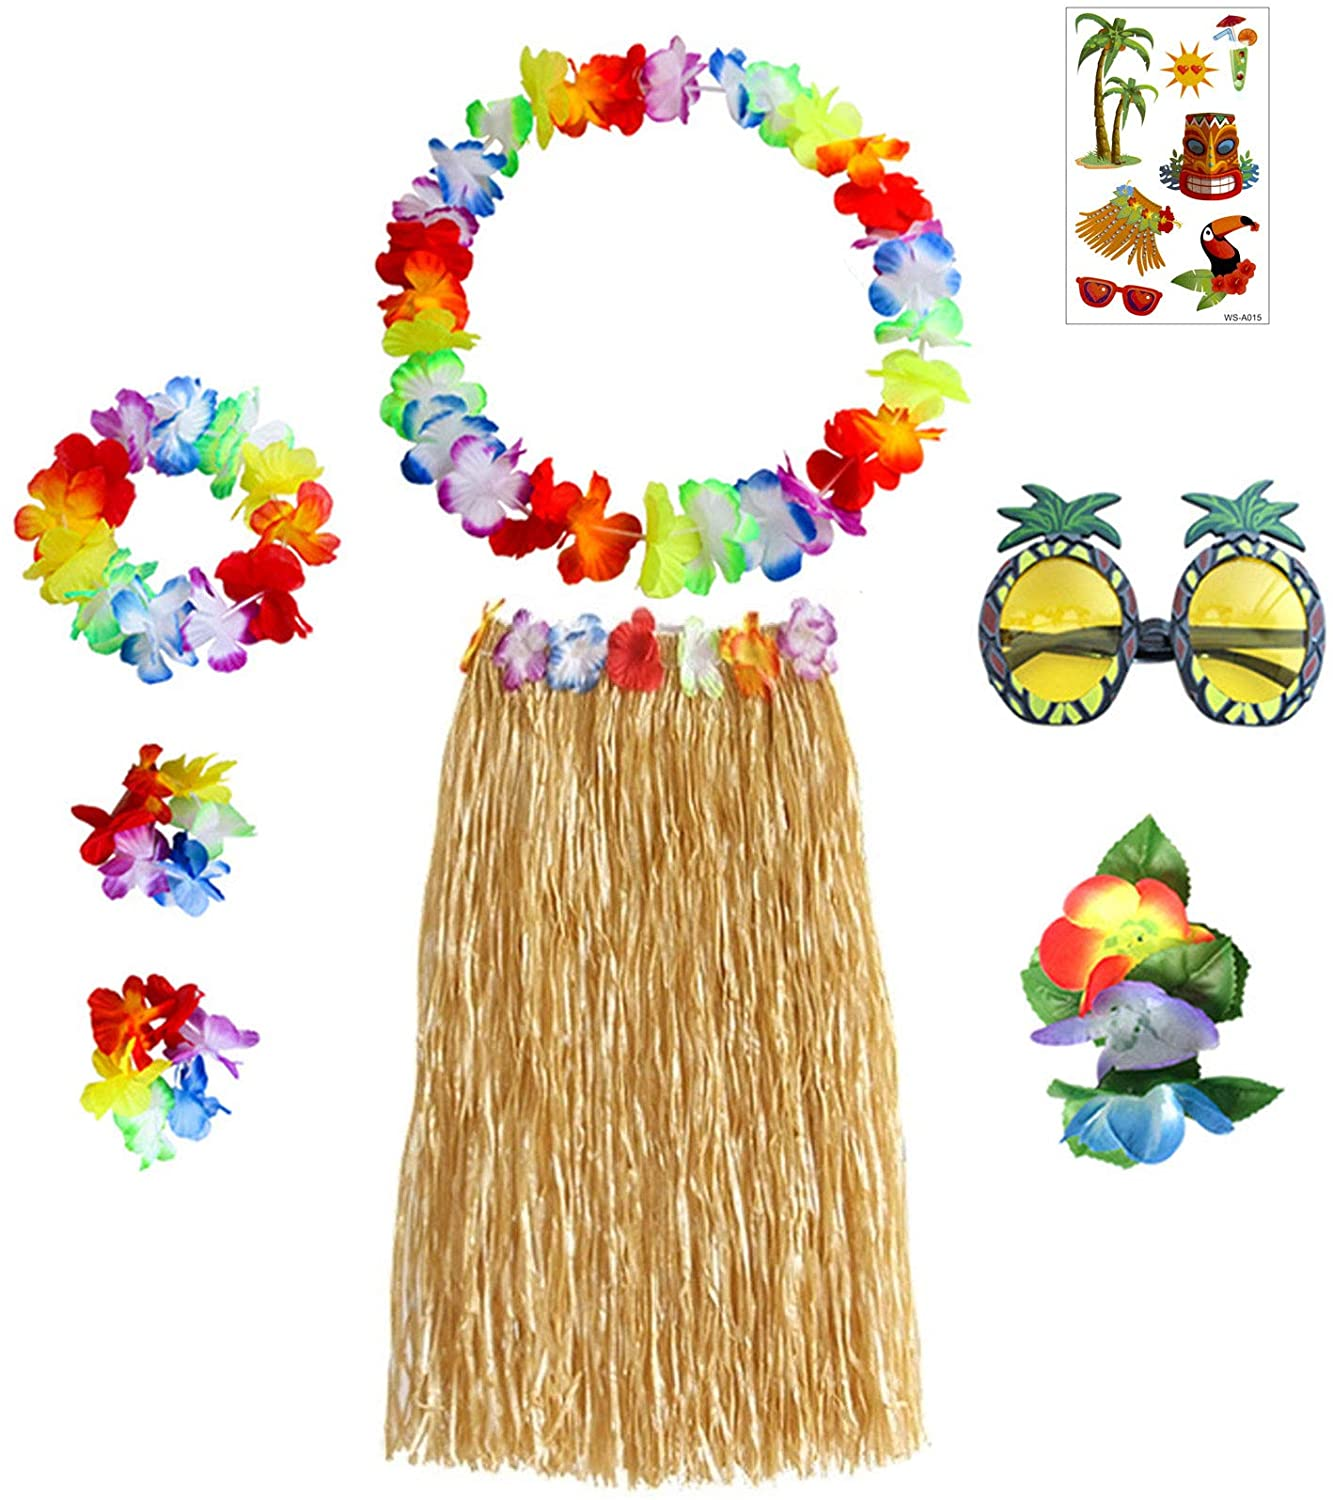 Gywantt Grass Skirts for Adults 8 Pcs Luau Party Decorations for Adults - 32inch Hawaiian Grass Skirts, Hawaiian Lei, Hibiscus Hair Clip, Pineapple Sunglasses, Luau Tattoos for Hawaii Luau Party